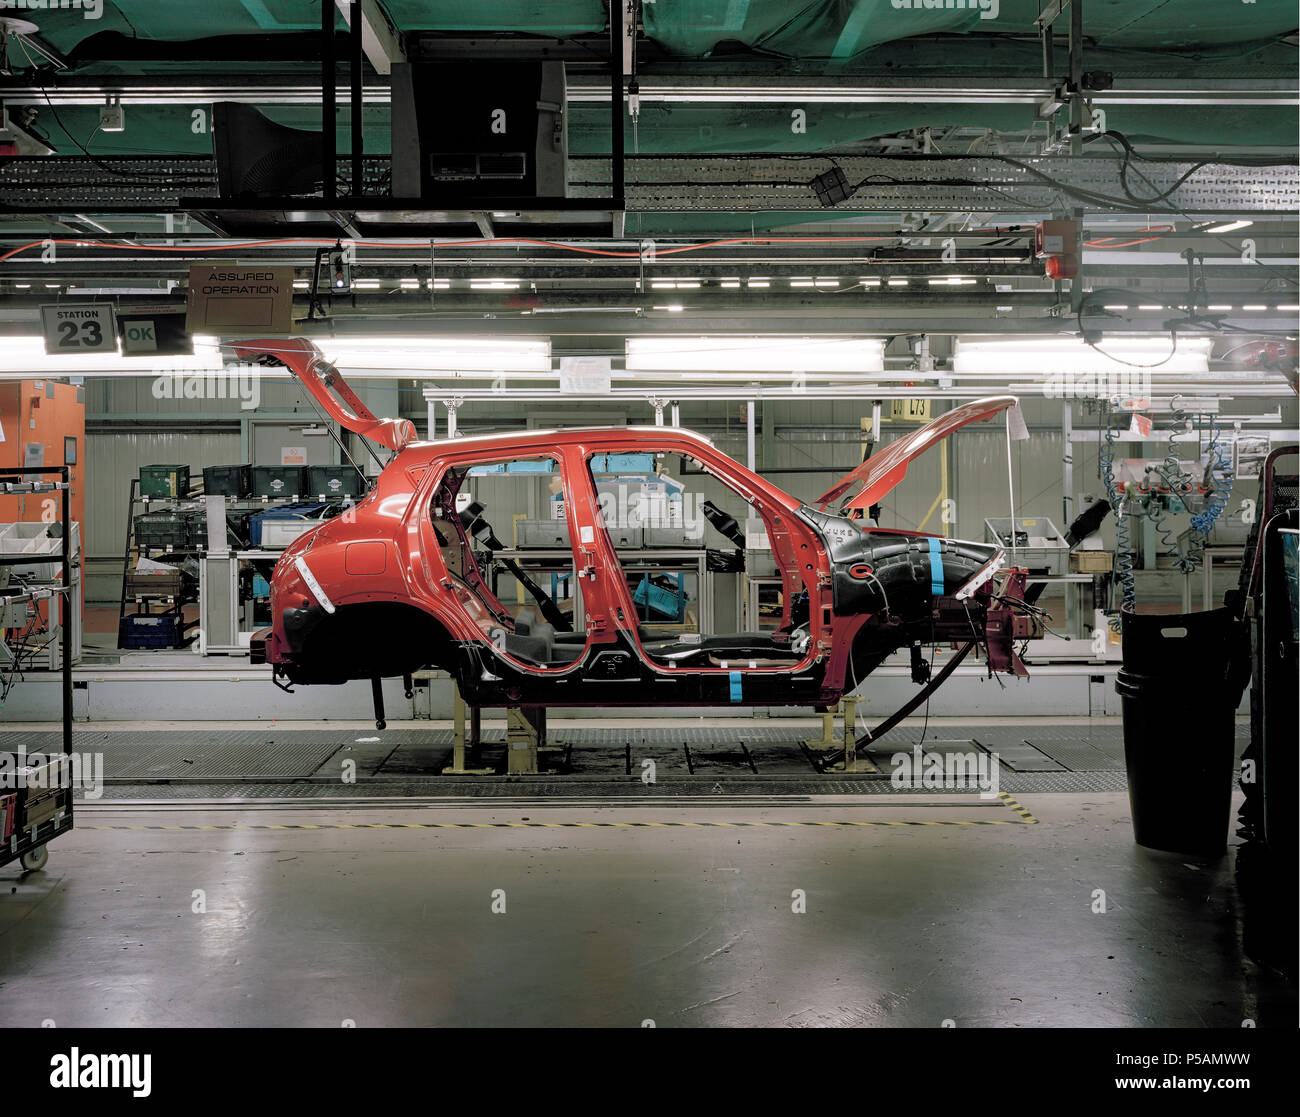 © John Angerson - Sunderland Trim and chassis production line of the latest 'compact crossover' Juke model at the Japanese owned Nissan car factory. - Stock Image